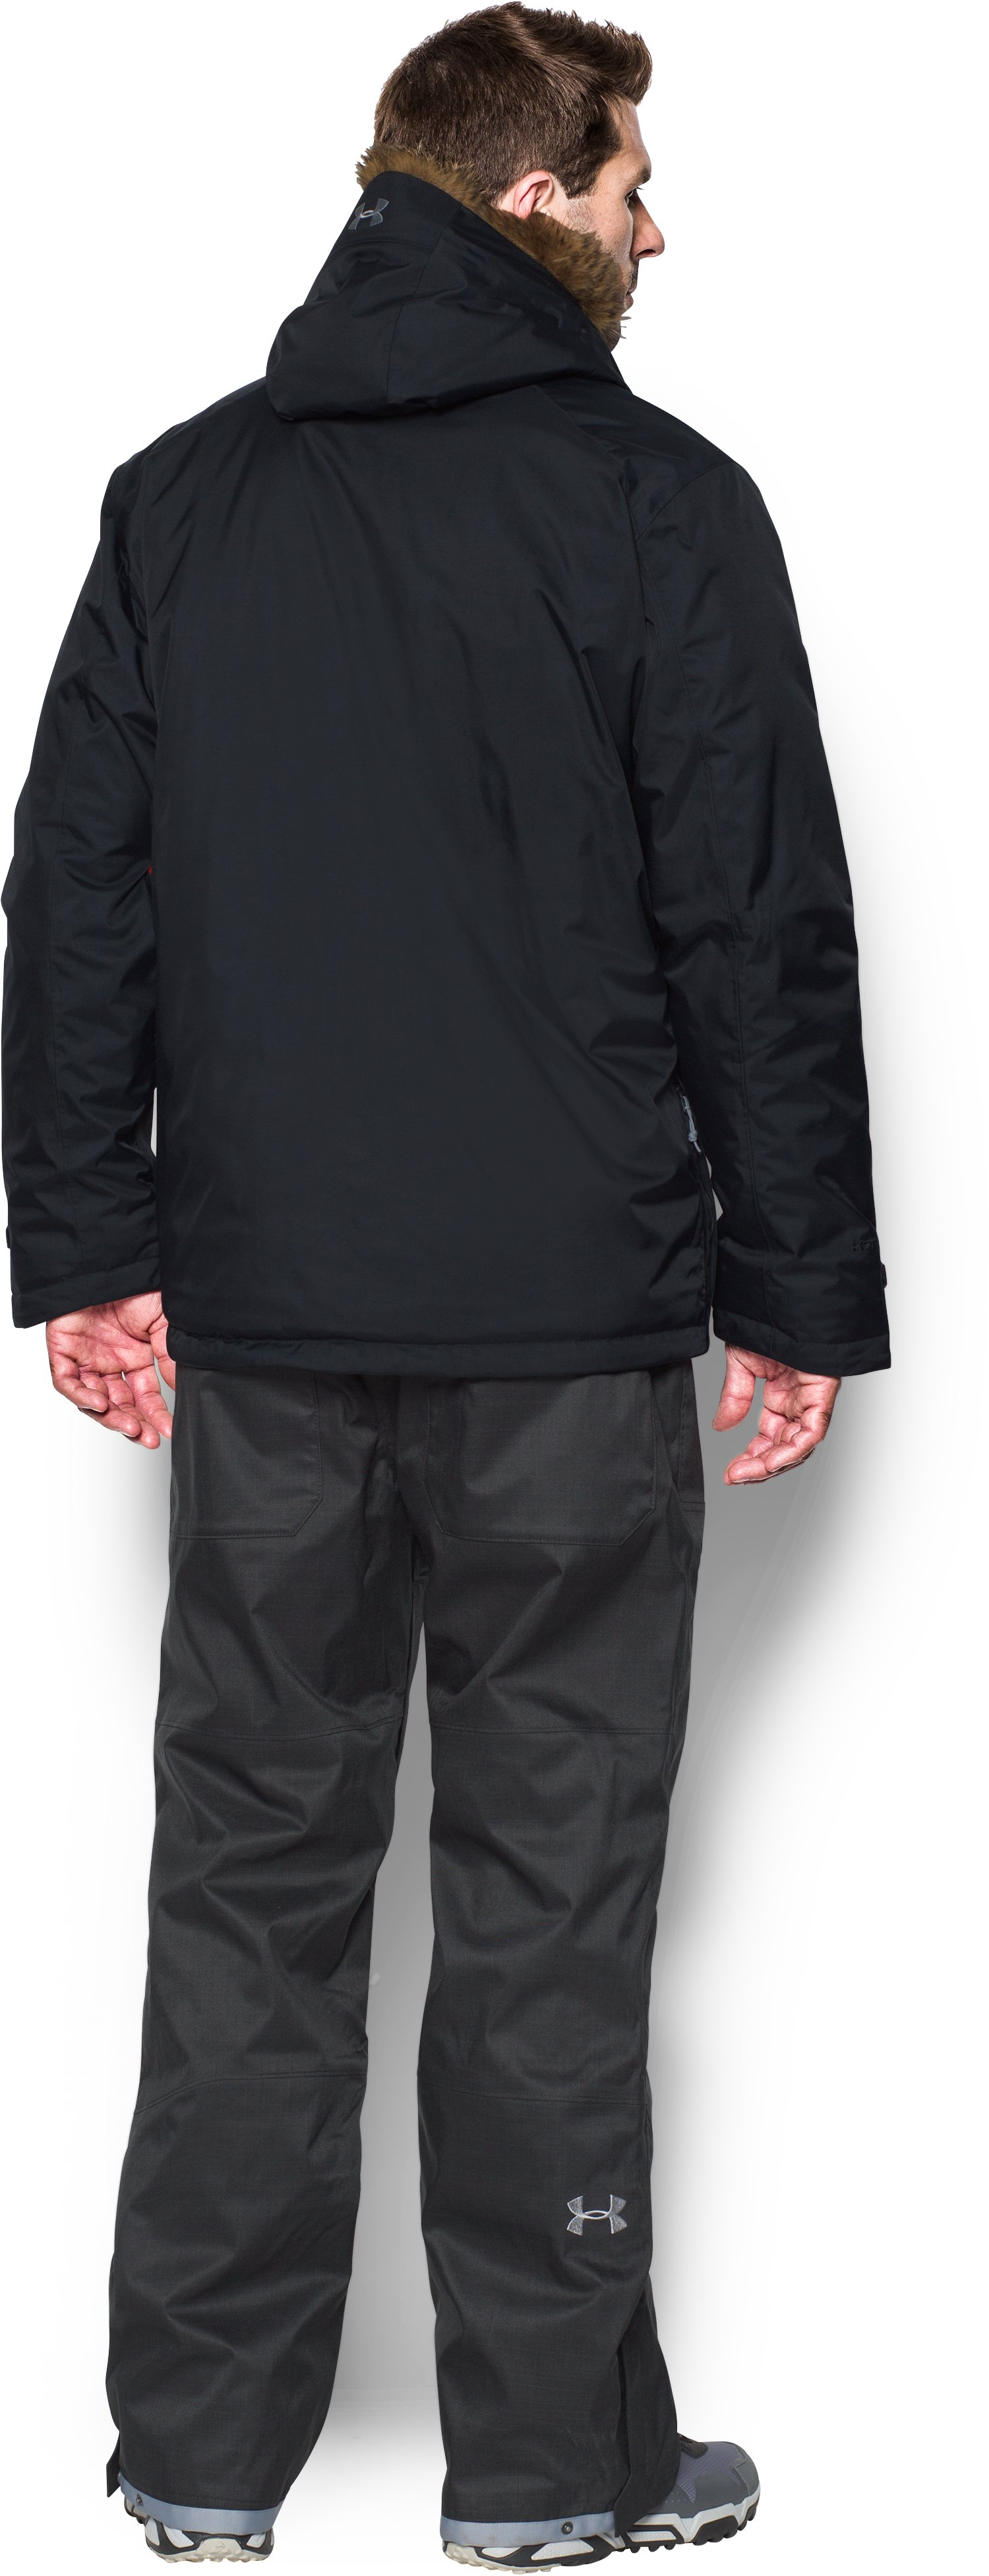 Men's ColdGear® Reactor Voltage Jacket, Black , Back